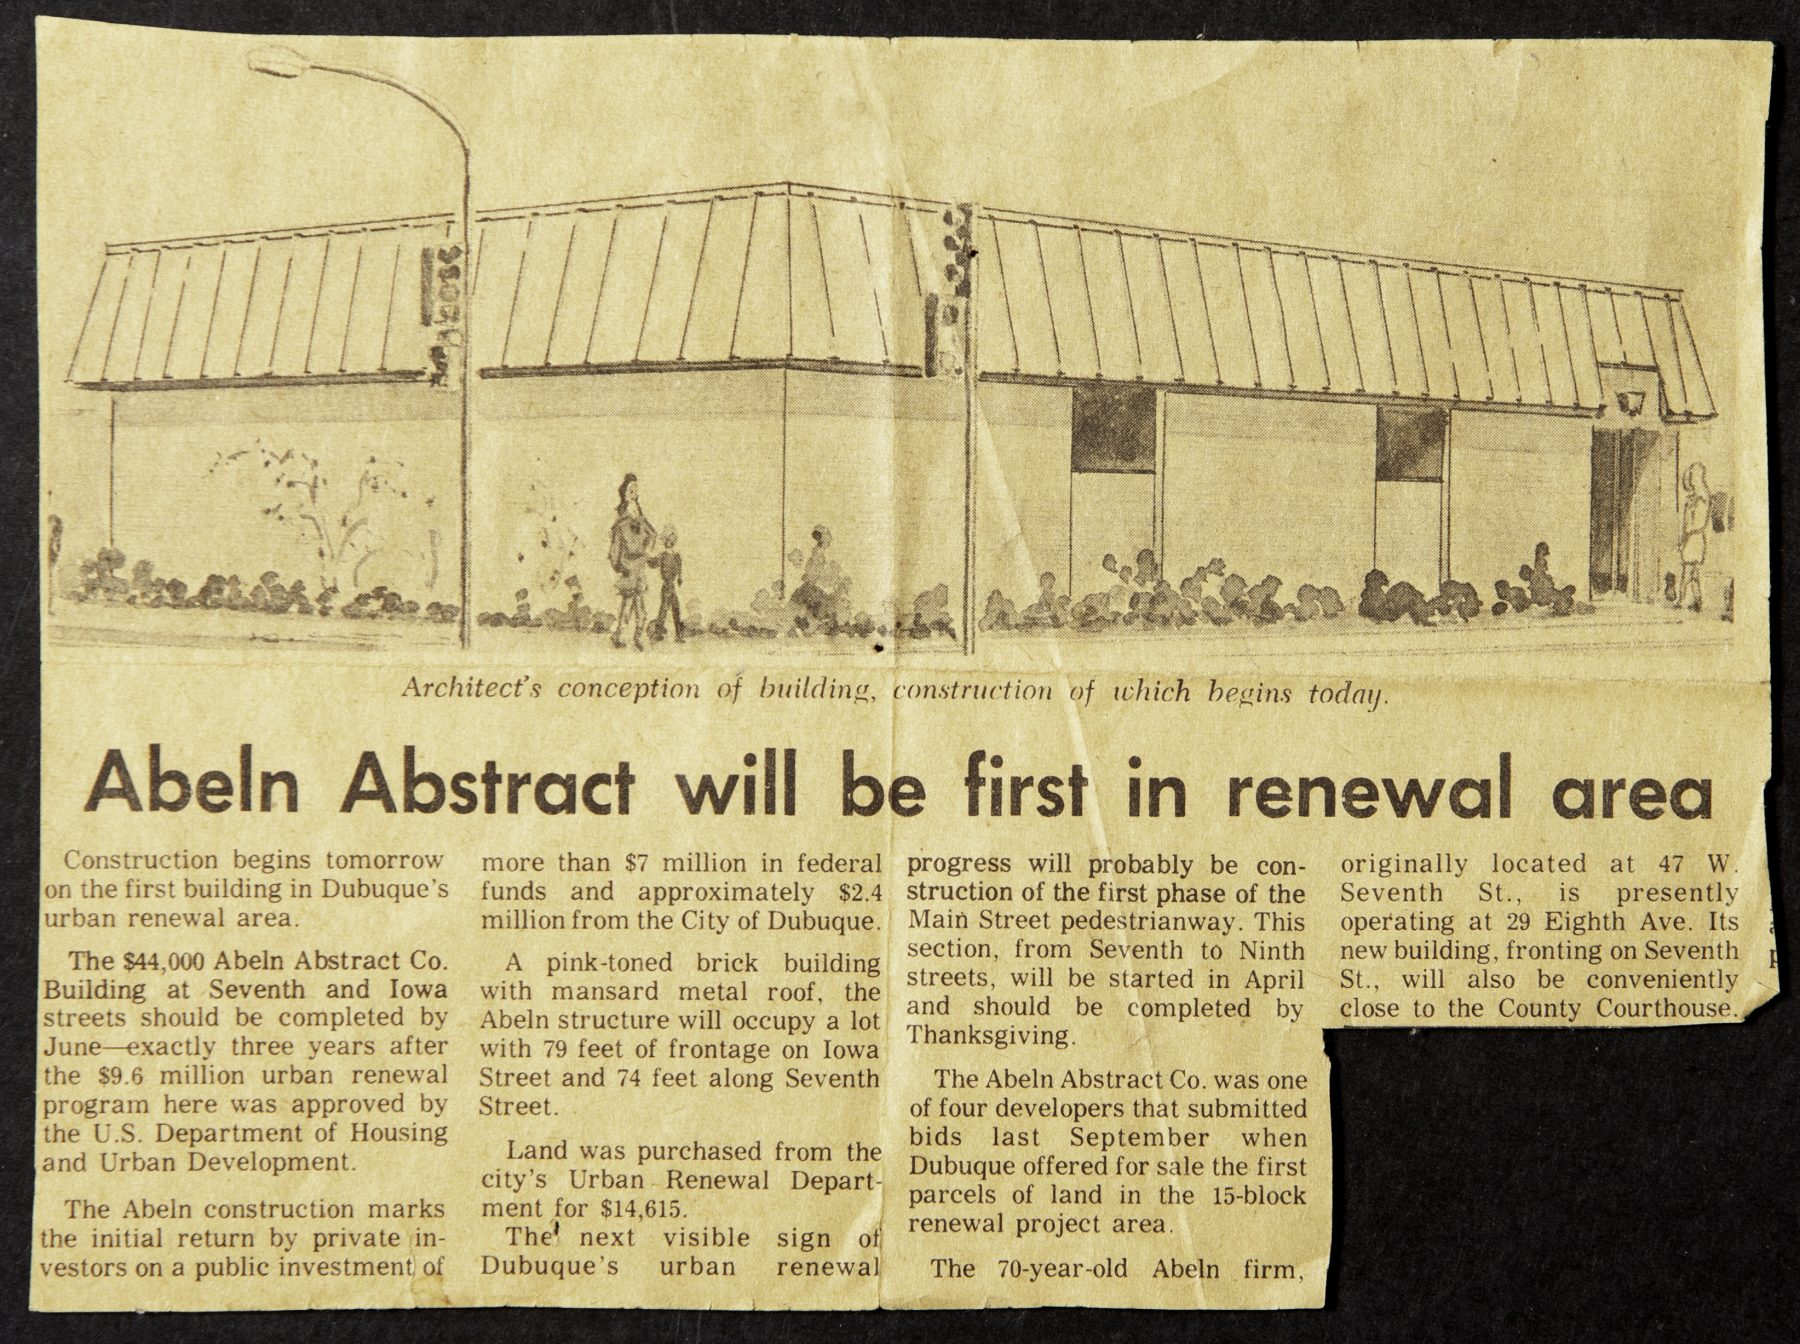 Abeln_2_Newspaper-Article-New-Building_